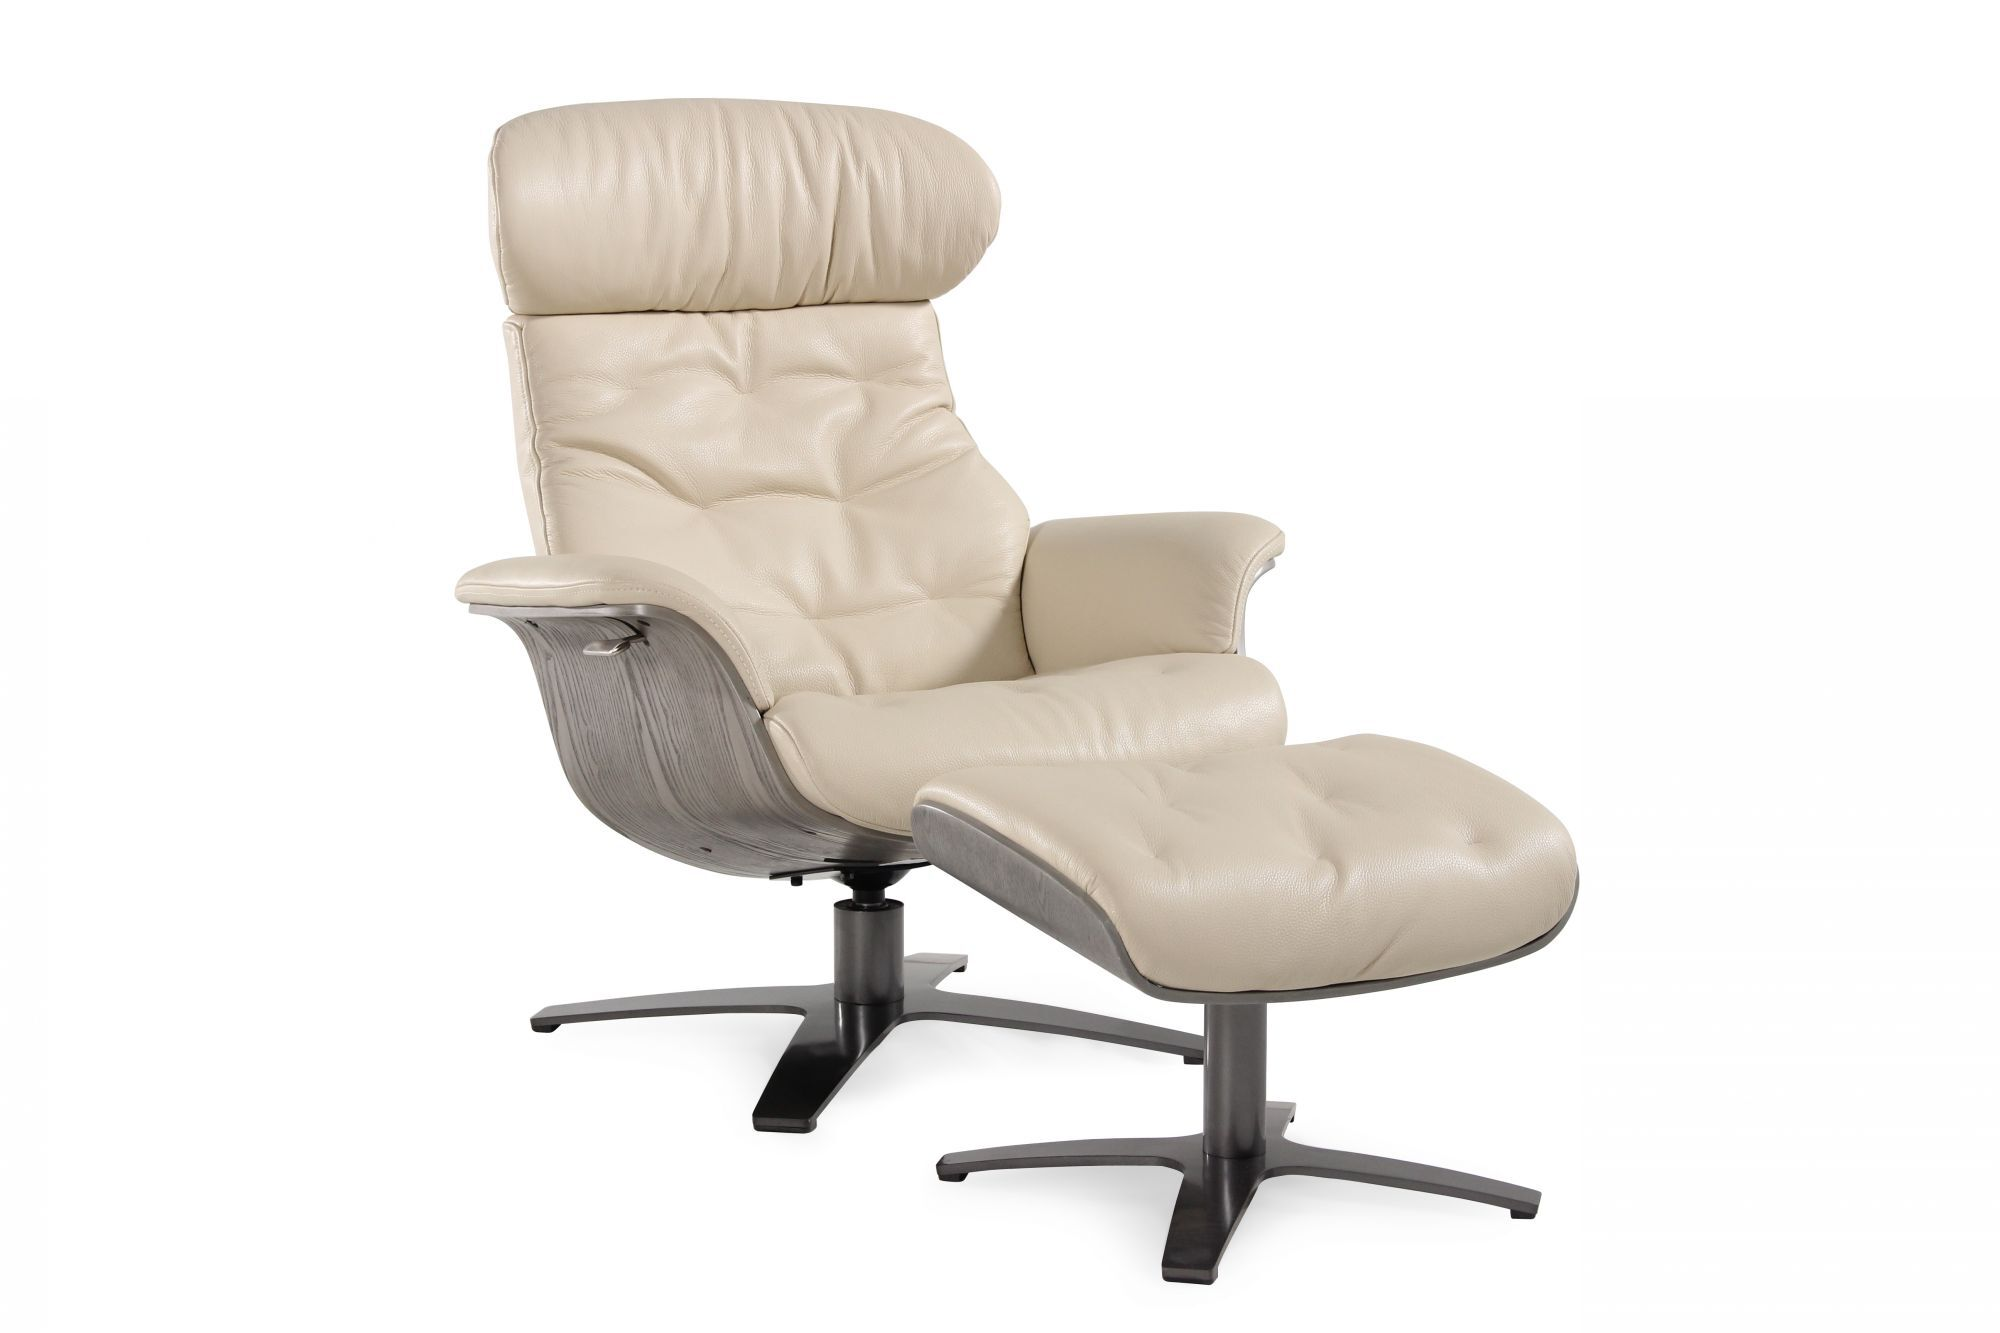 recliner vs chair with ottoman wheelchair equipment contemporary swivel and in cream mathis